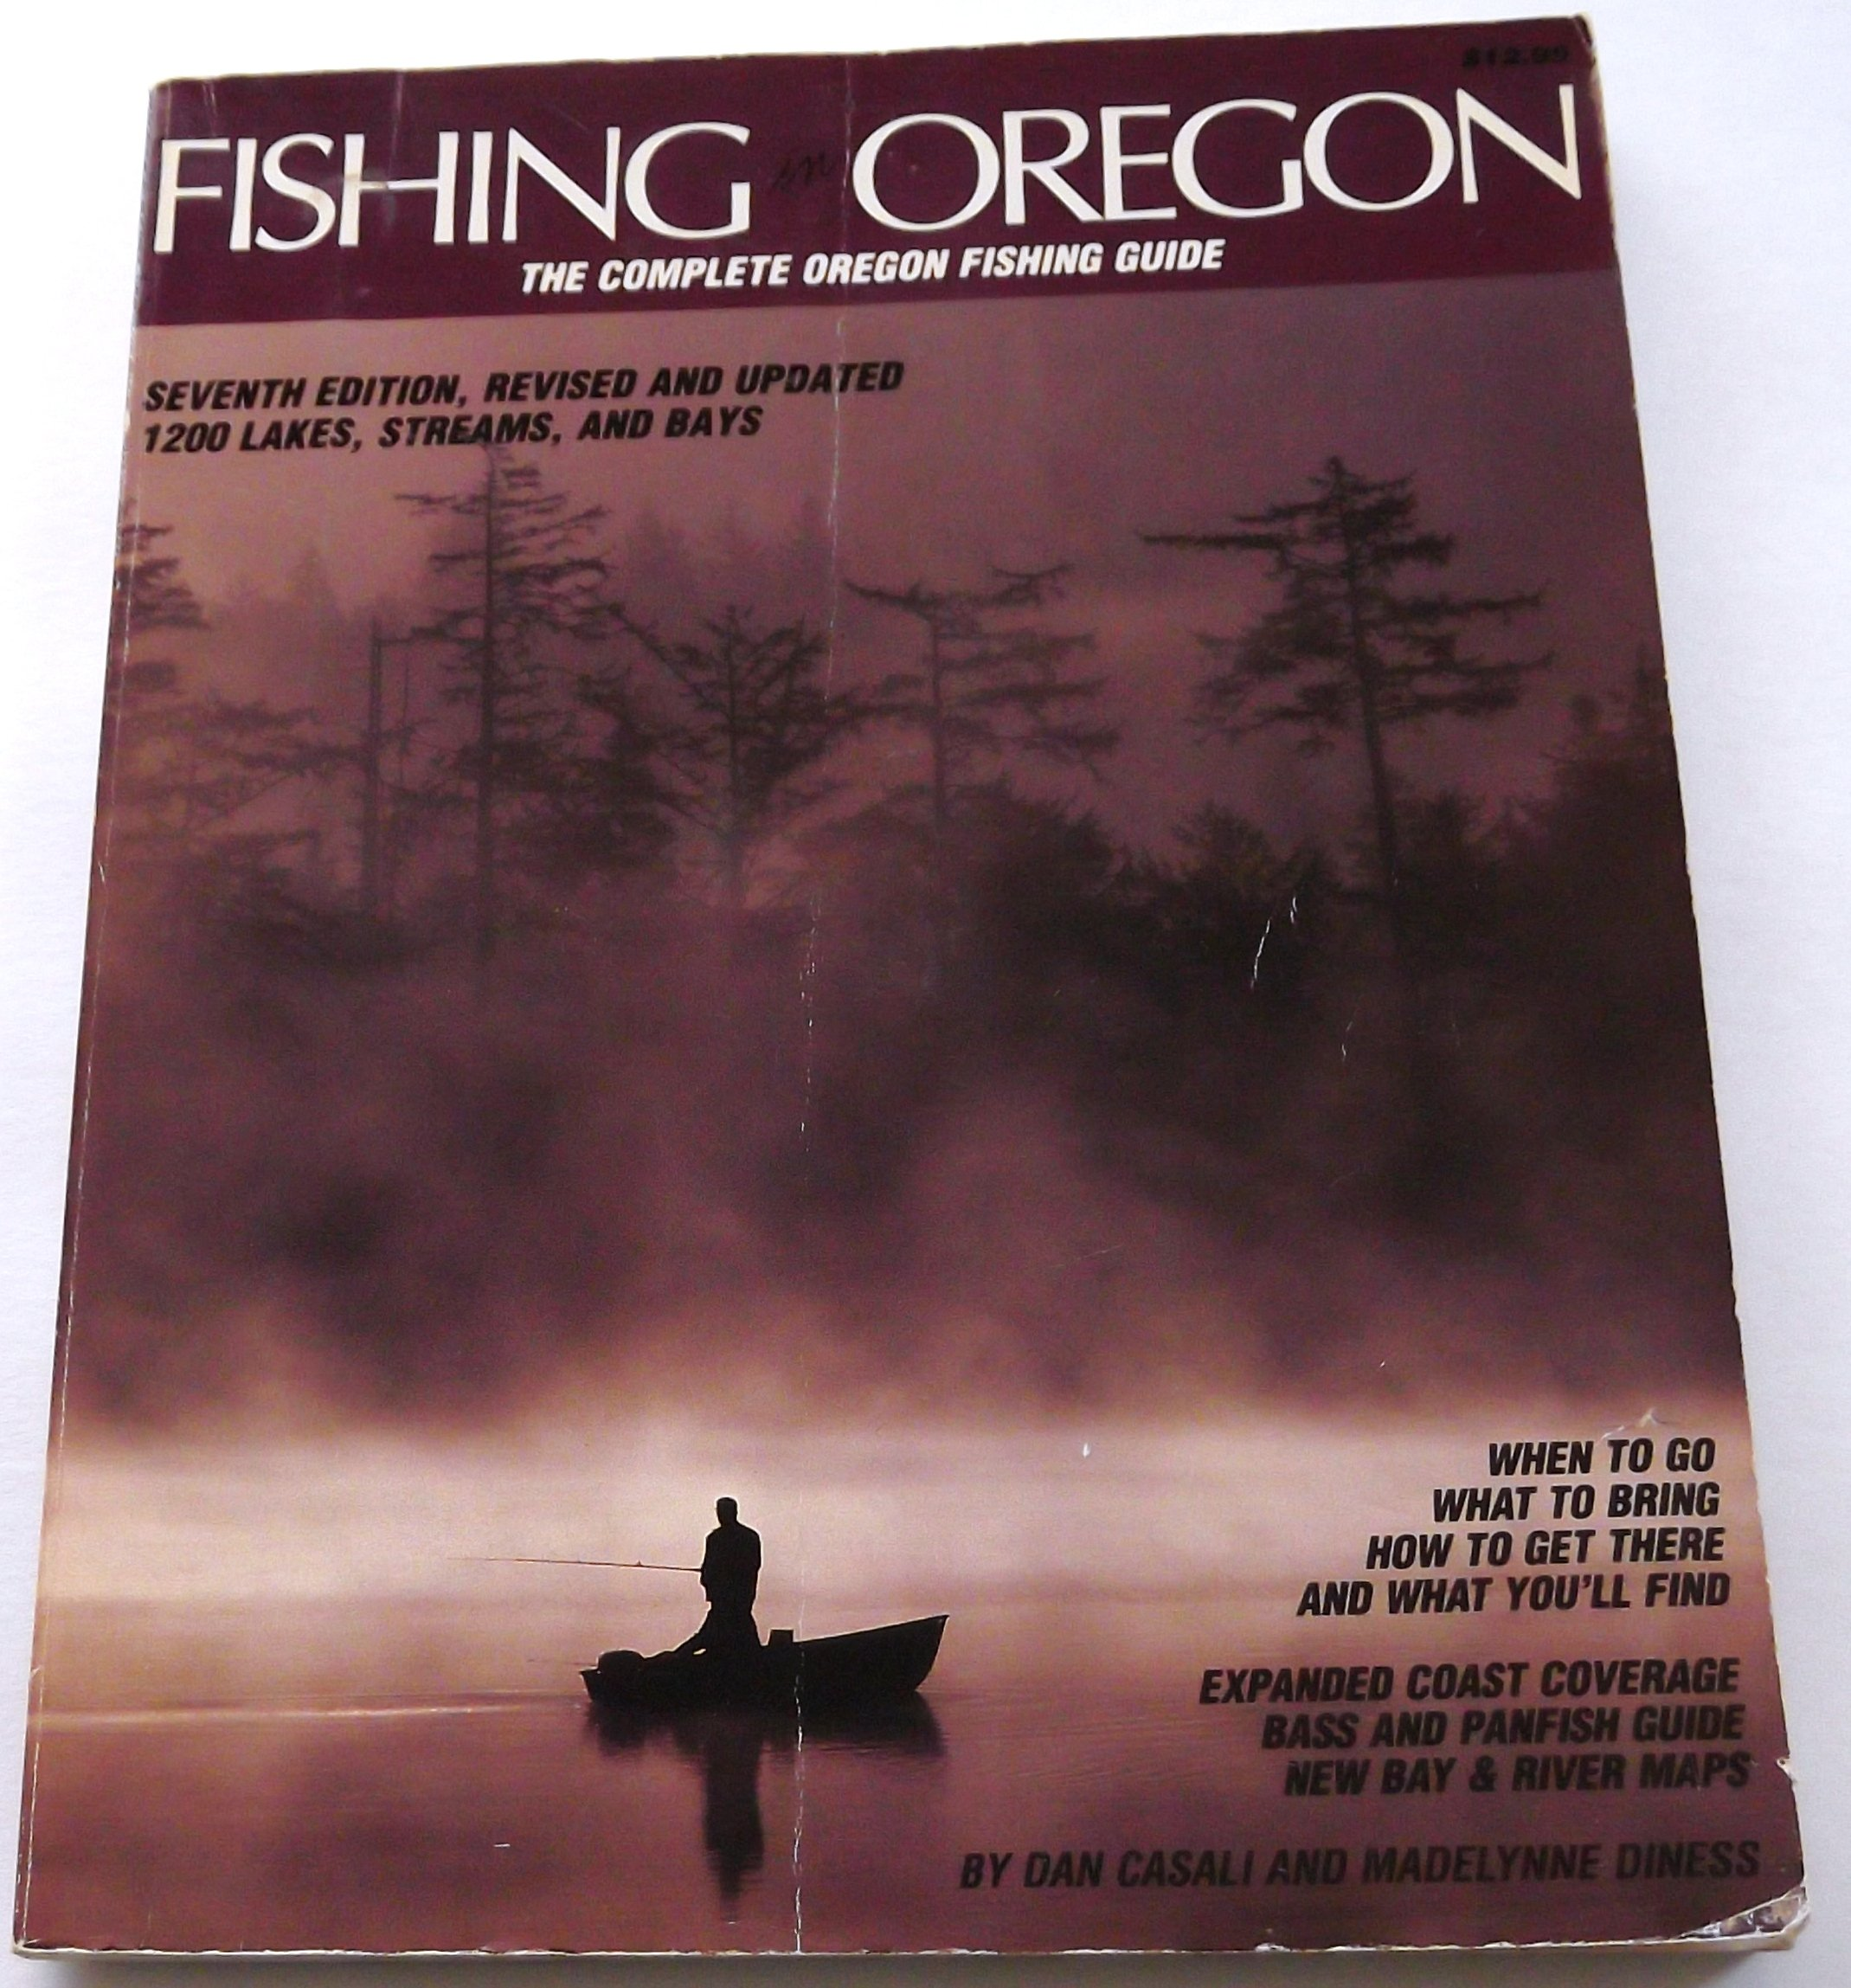 Fishing in Oregon, Sheehan,Madellynne Diness and Dan Casali